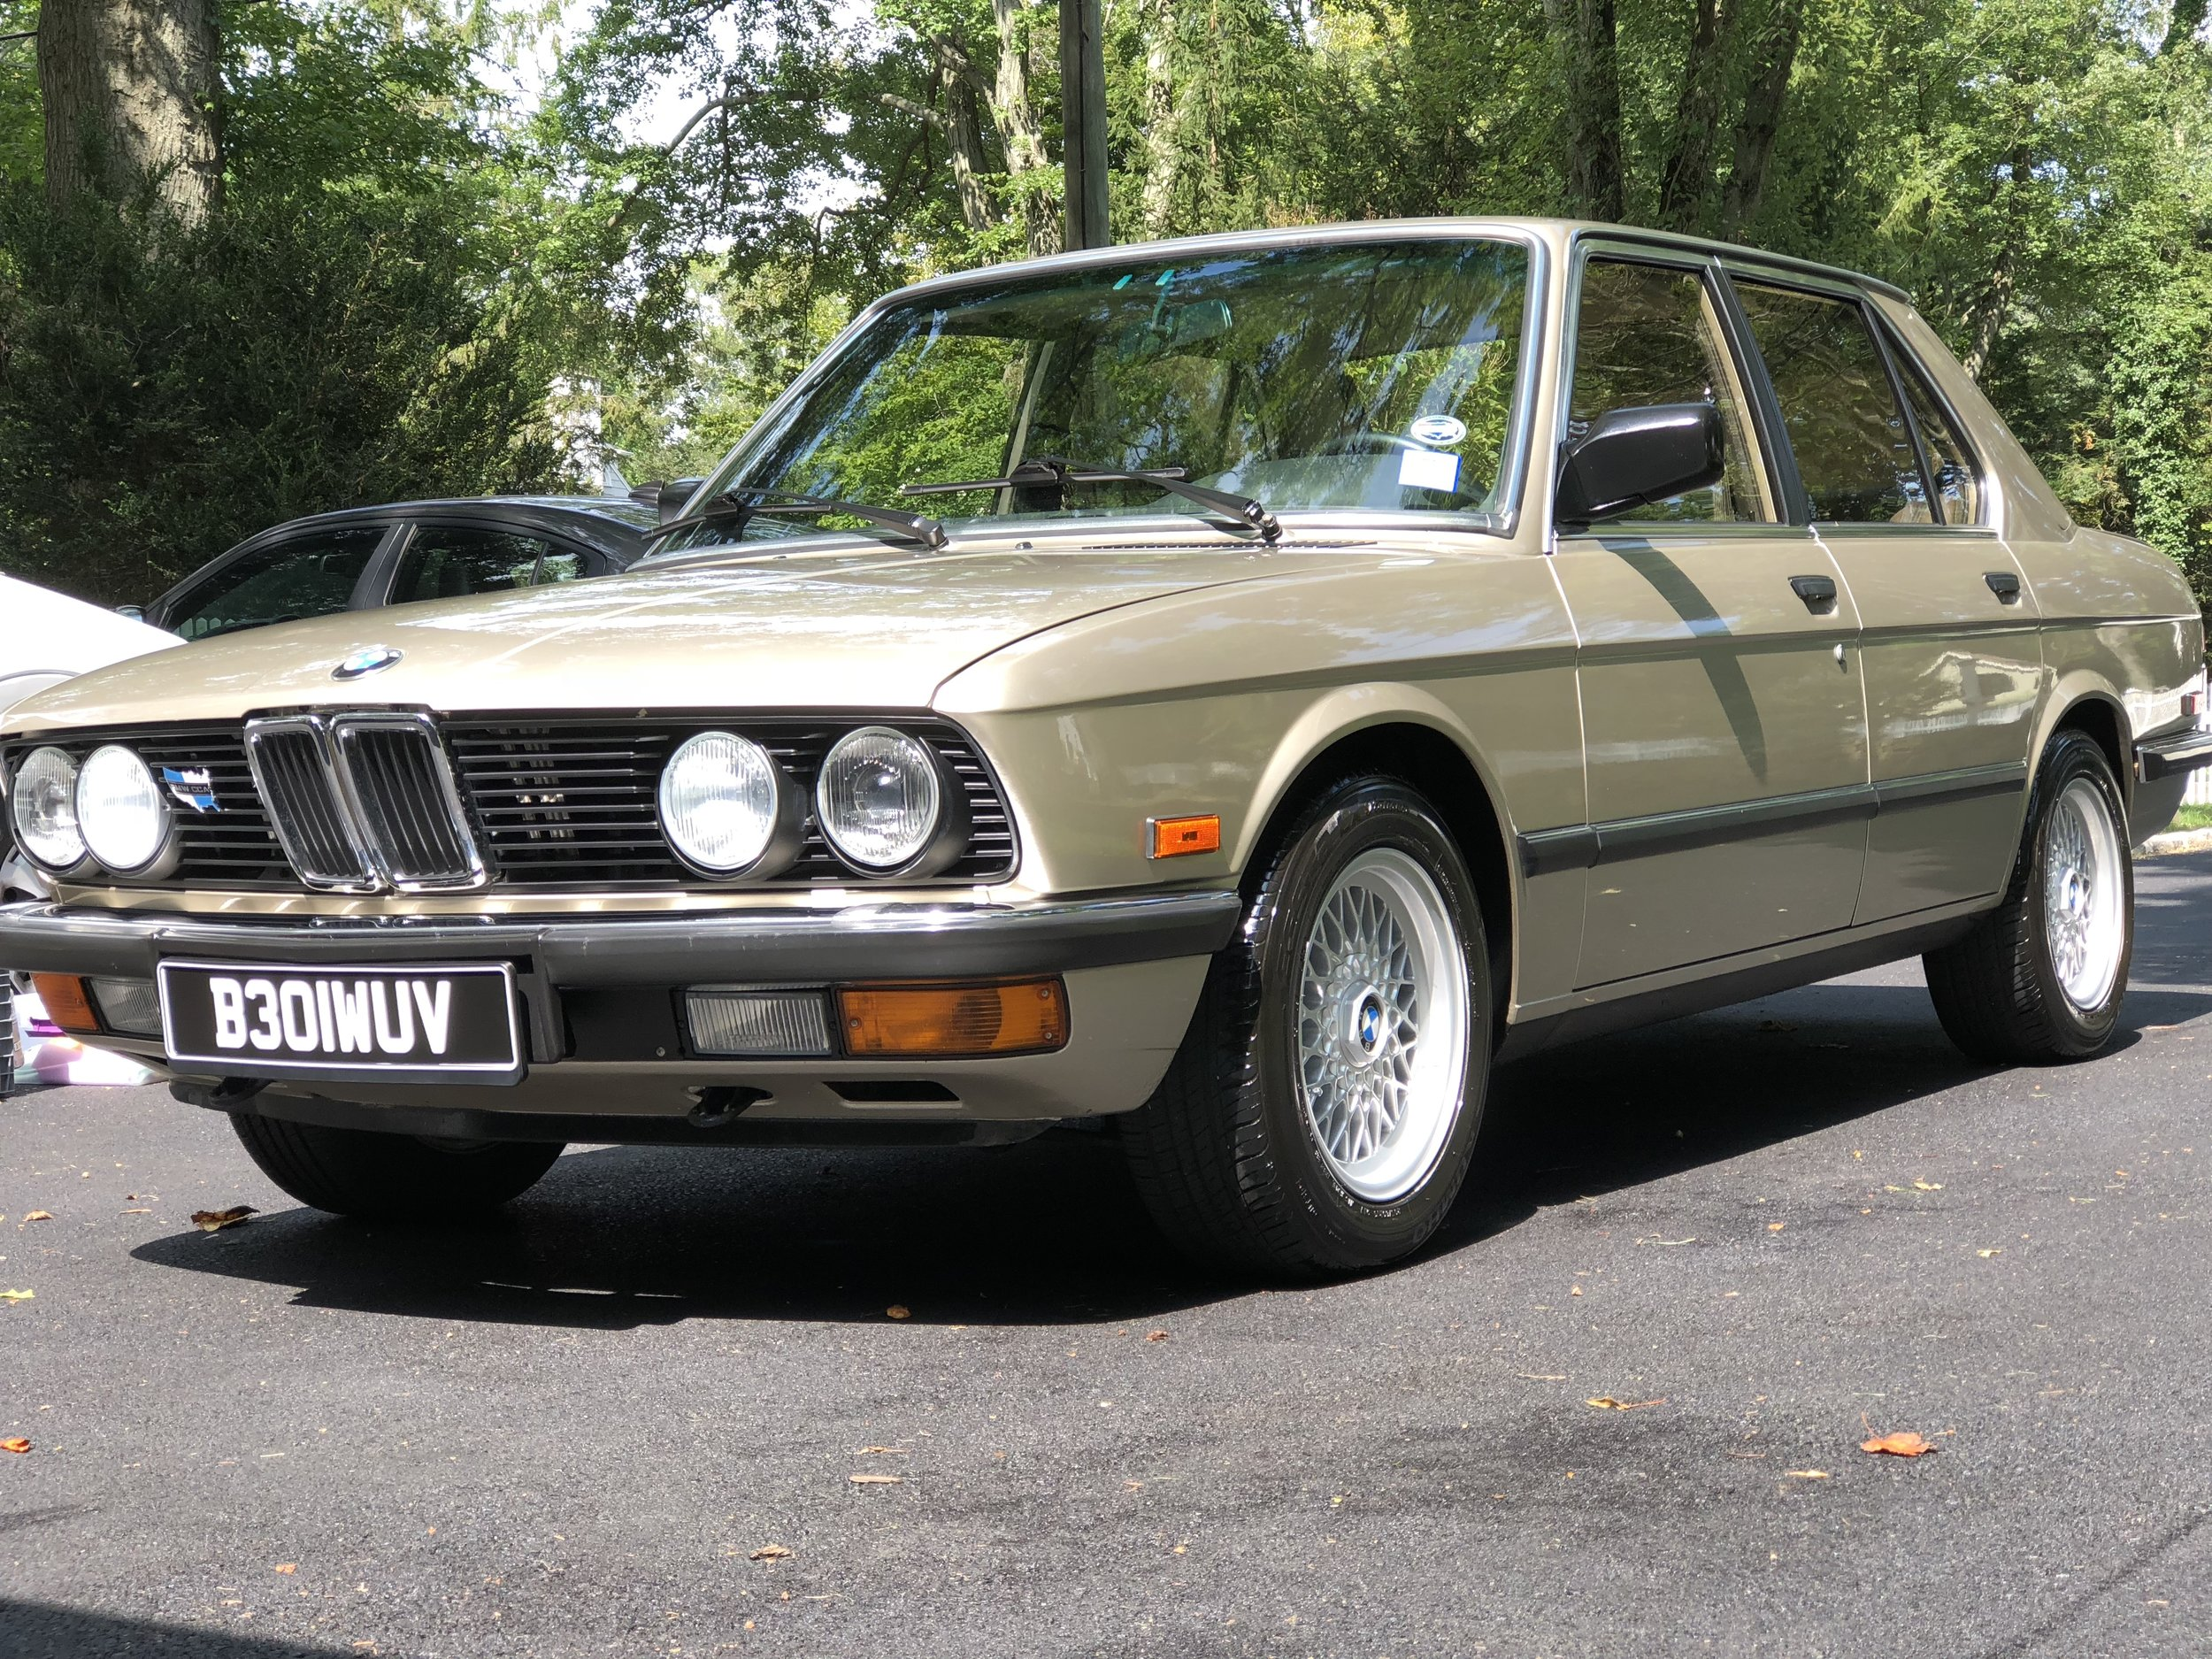 Bmw 520I E28 - New Car Detail - Engine Bay Detailexpect the unexpected, this immaculate classic that's powered by an S50B30US 3.0L straight-six received our new car protection detail & engine bay detail.